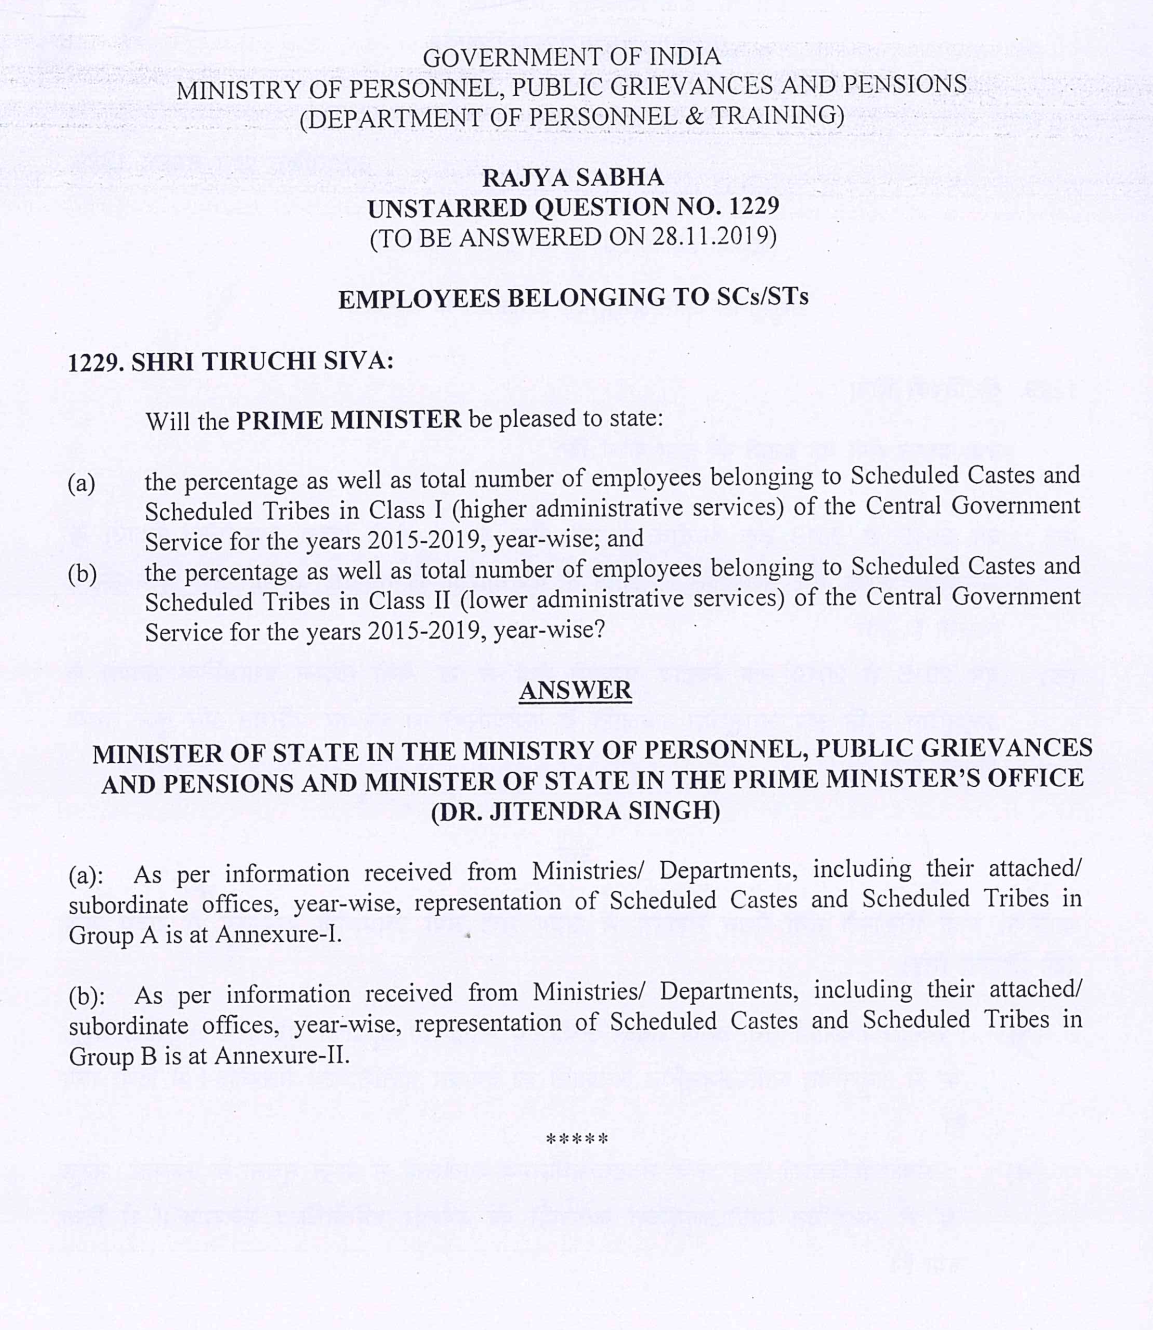 employees belonging to sc st in government service